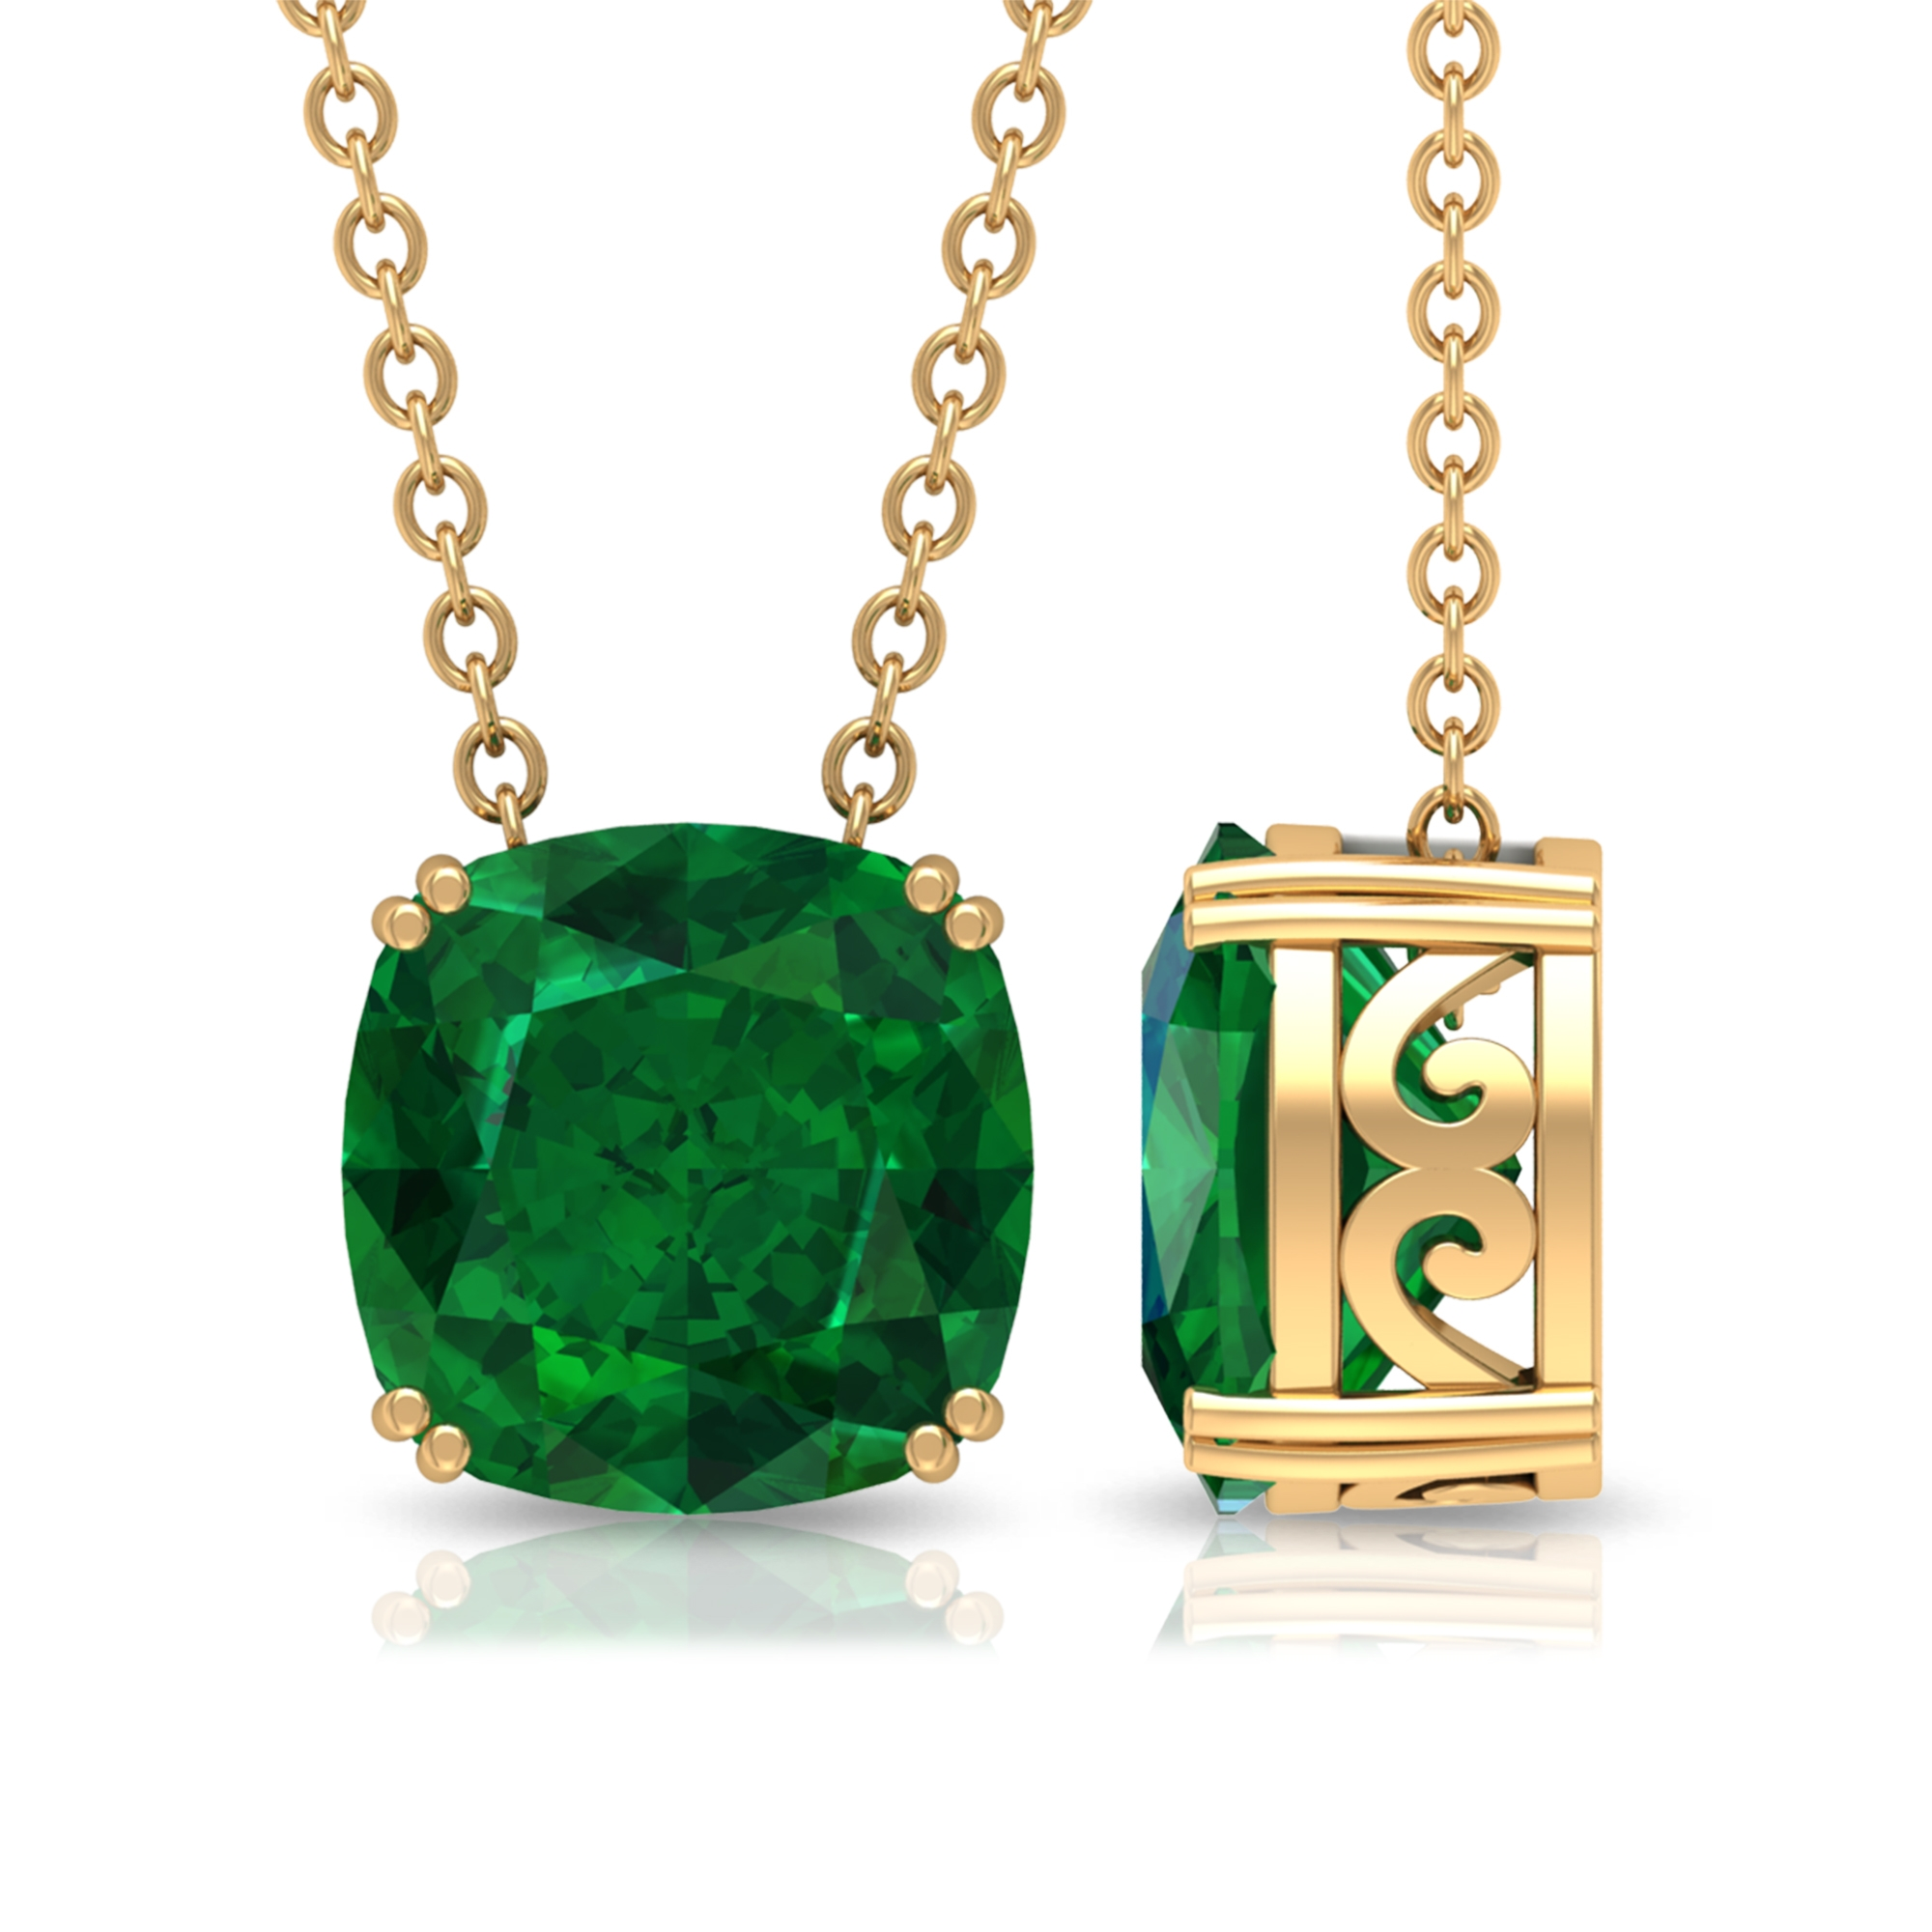 8 MM Cushion Cut Emerald Solitaire Simple Pendant in Double Prong Setting for Women